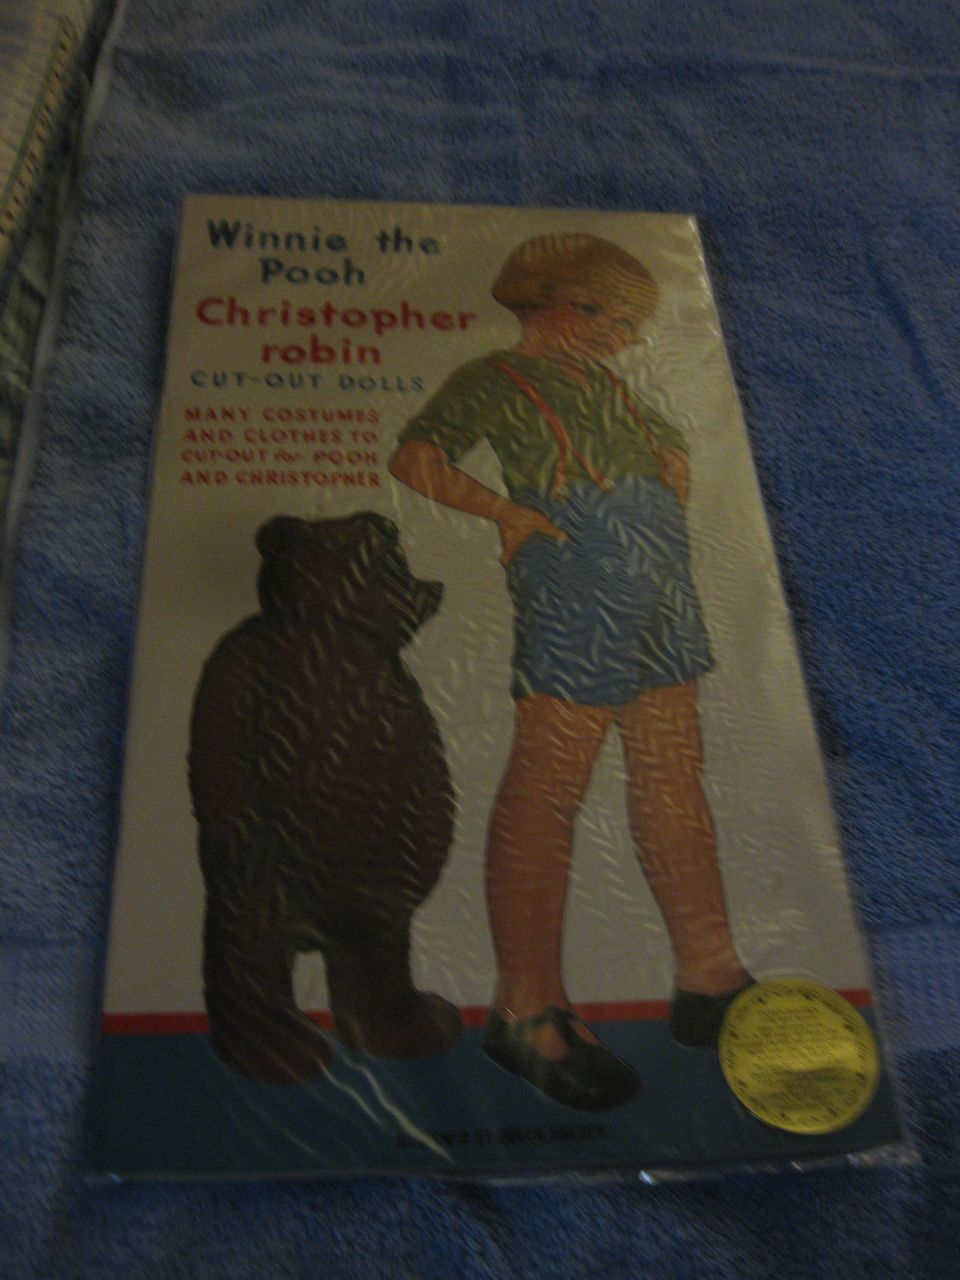 Winnie the Pooh Christopher  Robin cut-out dolls book  Many costumes and clothes to cut out for pooh and christopher